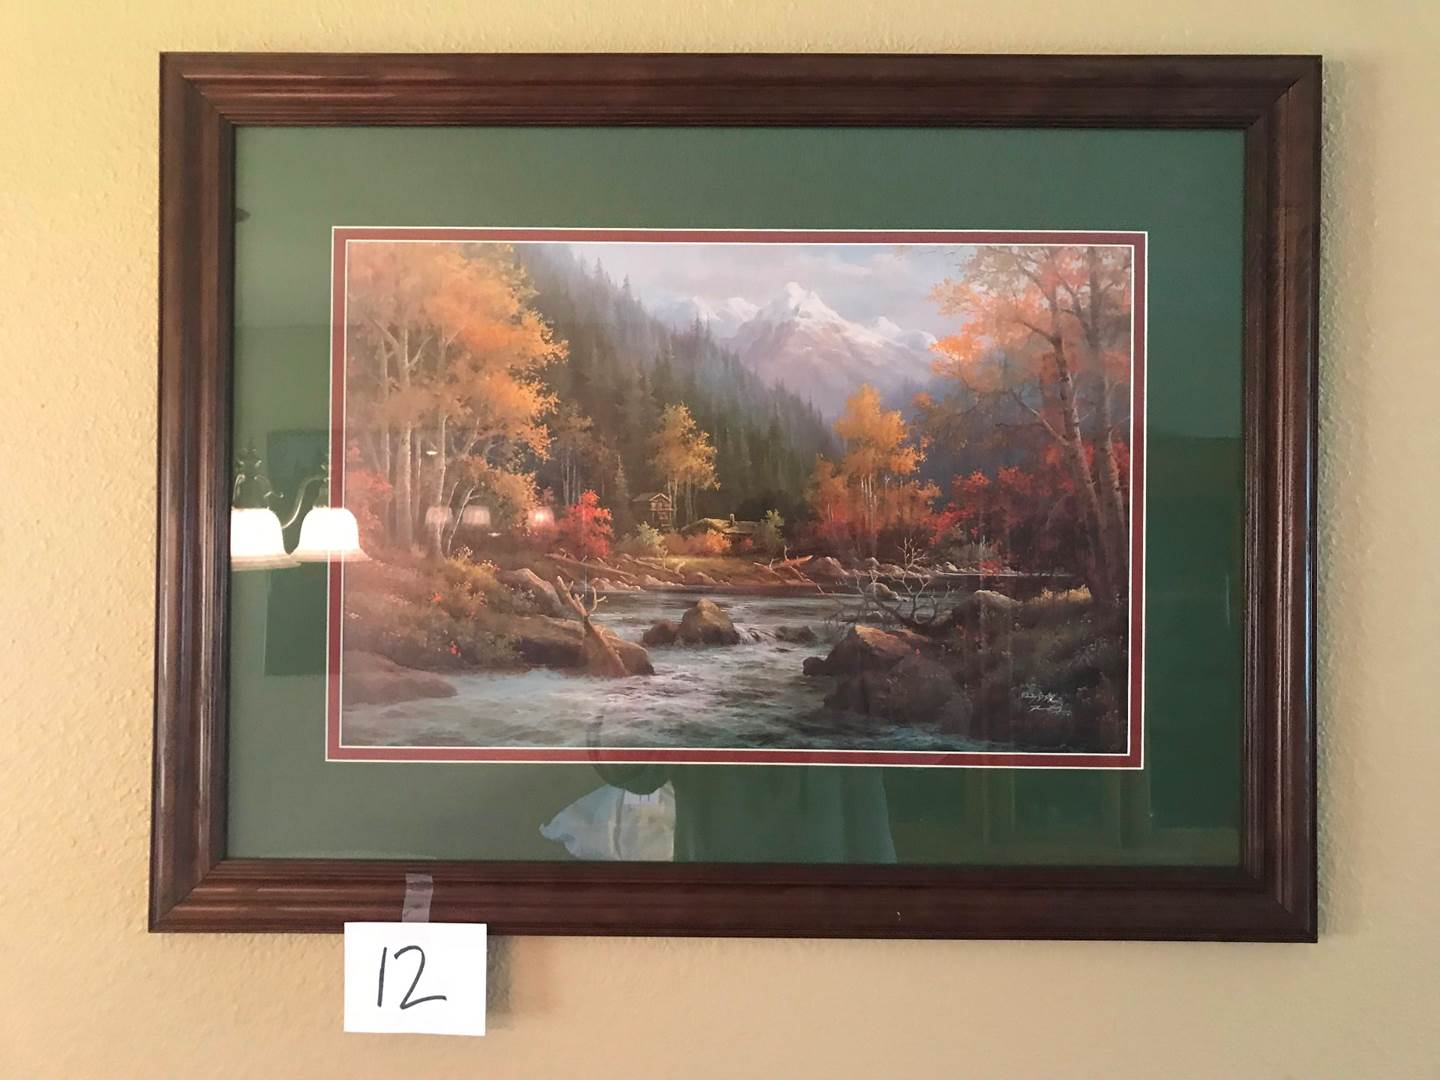 """Lot # 12 -Serene Wilderness Signed Print #522/999 """"Can not make out signature"""" - 33"""" x 25"""". (main image)"""